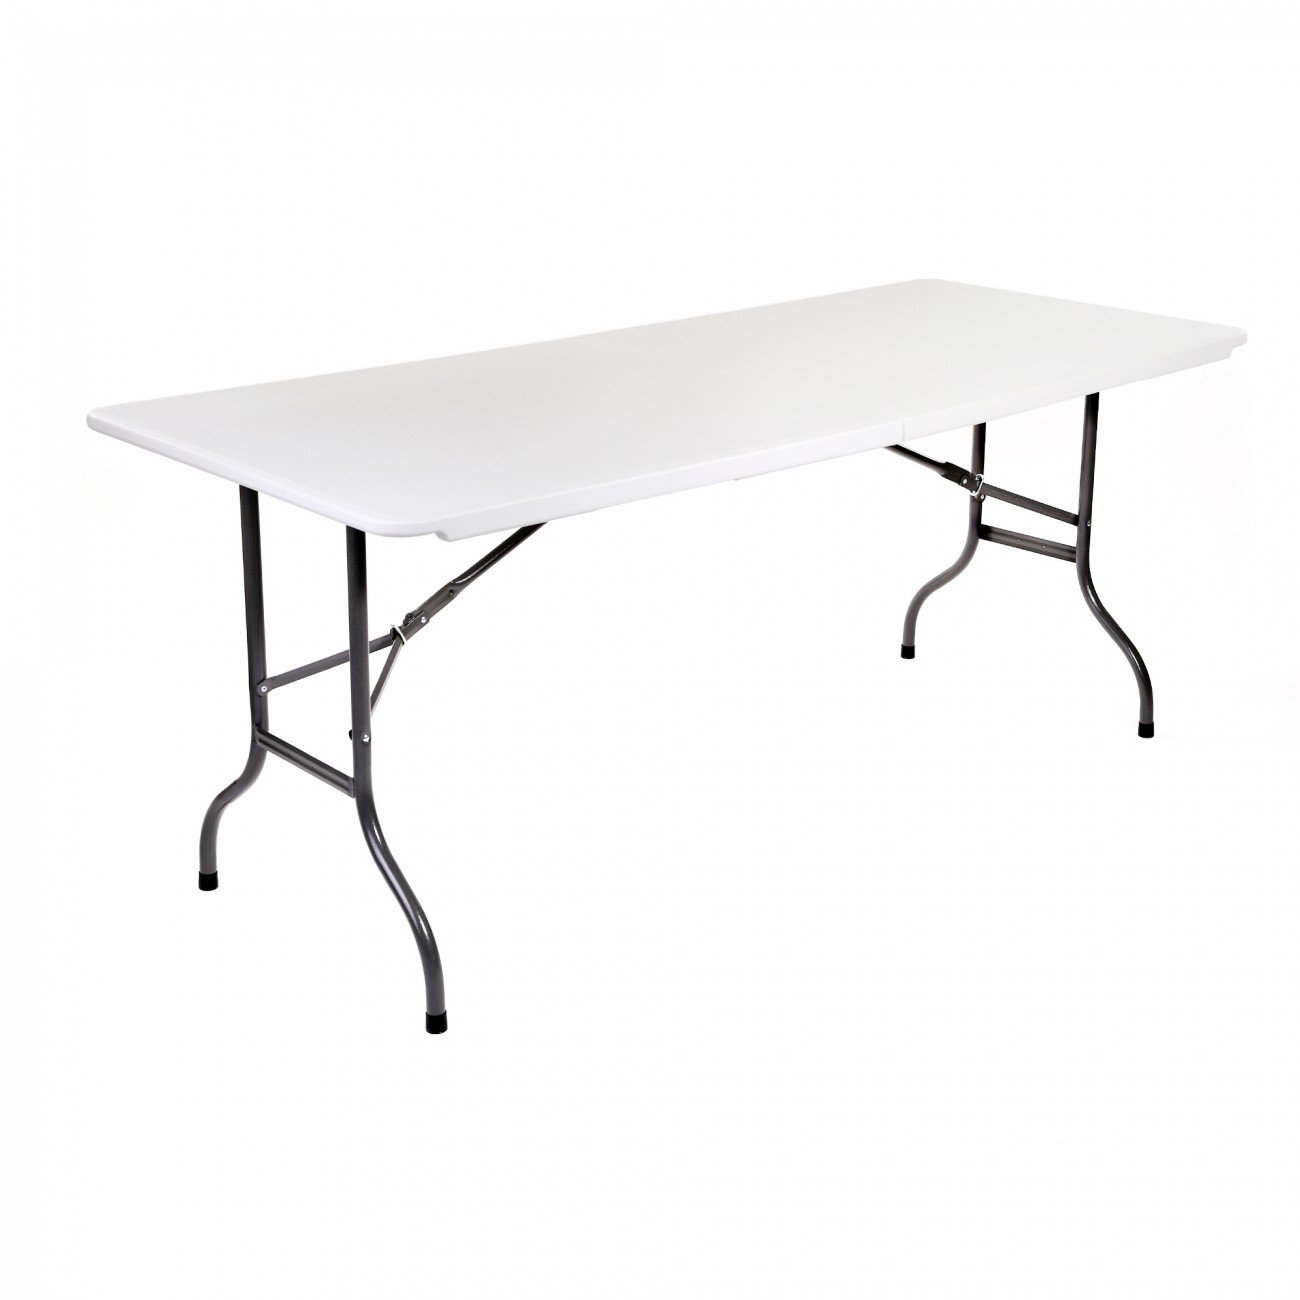 Acheter table pliante table pliable table rabattable table escamotable - Table de jardin blanche ...